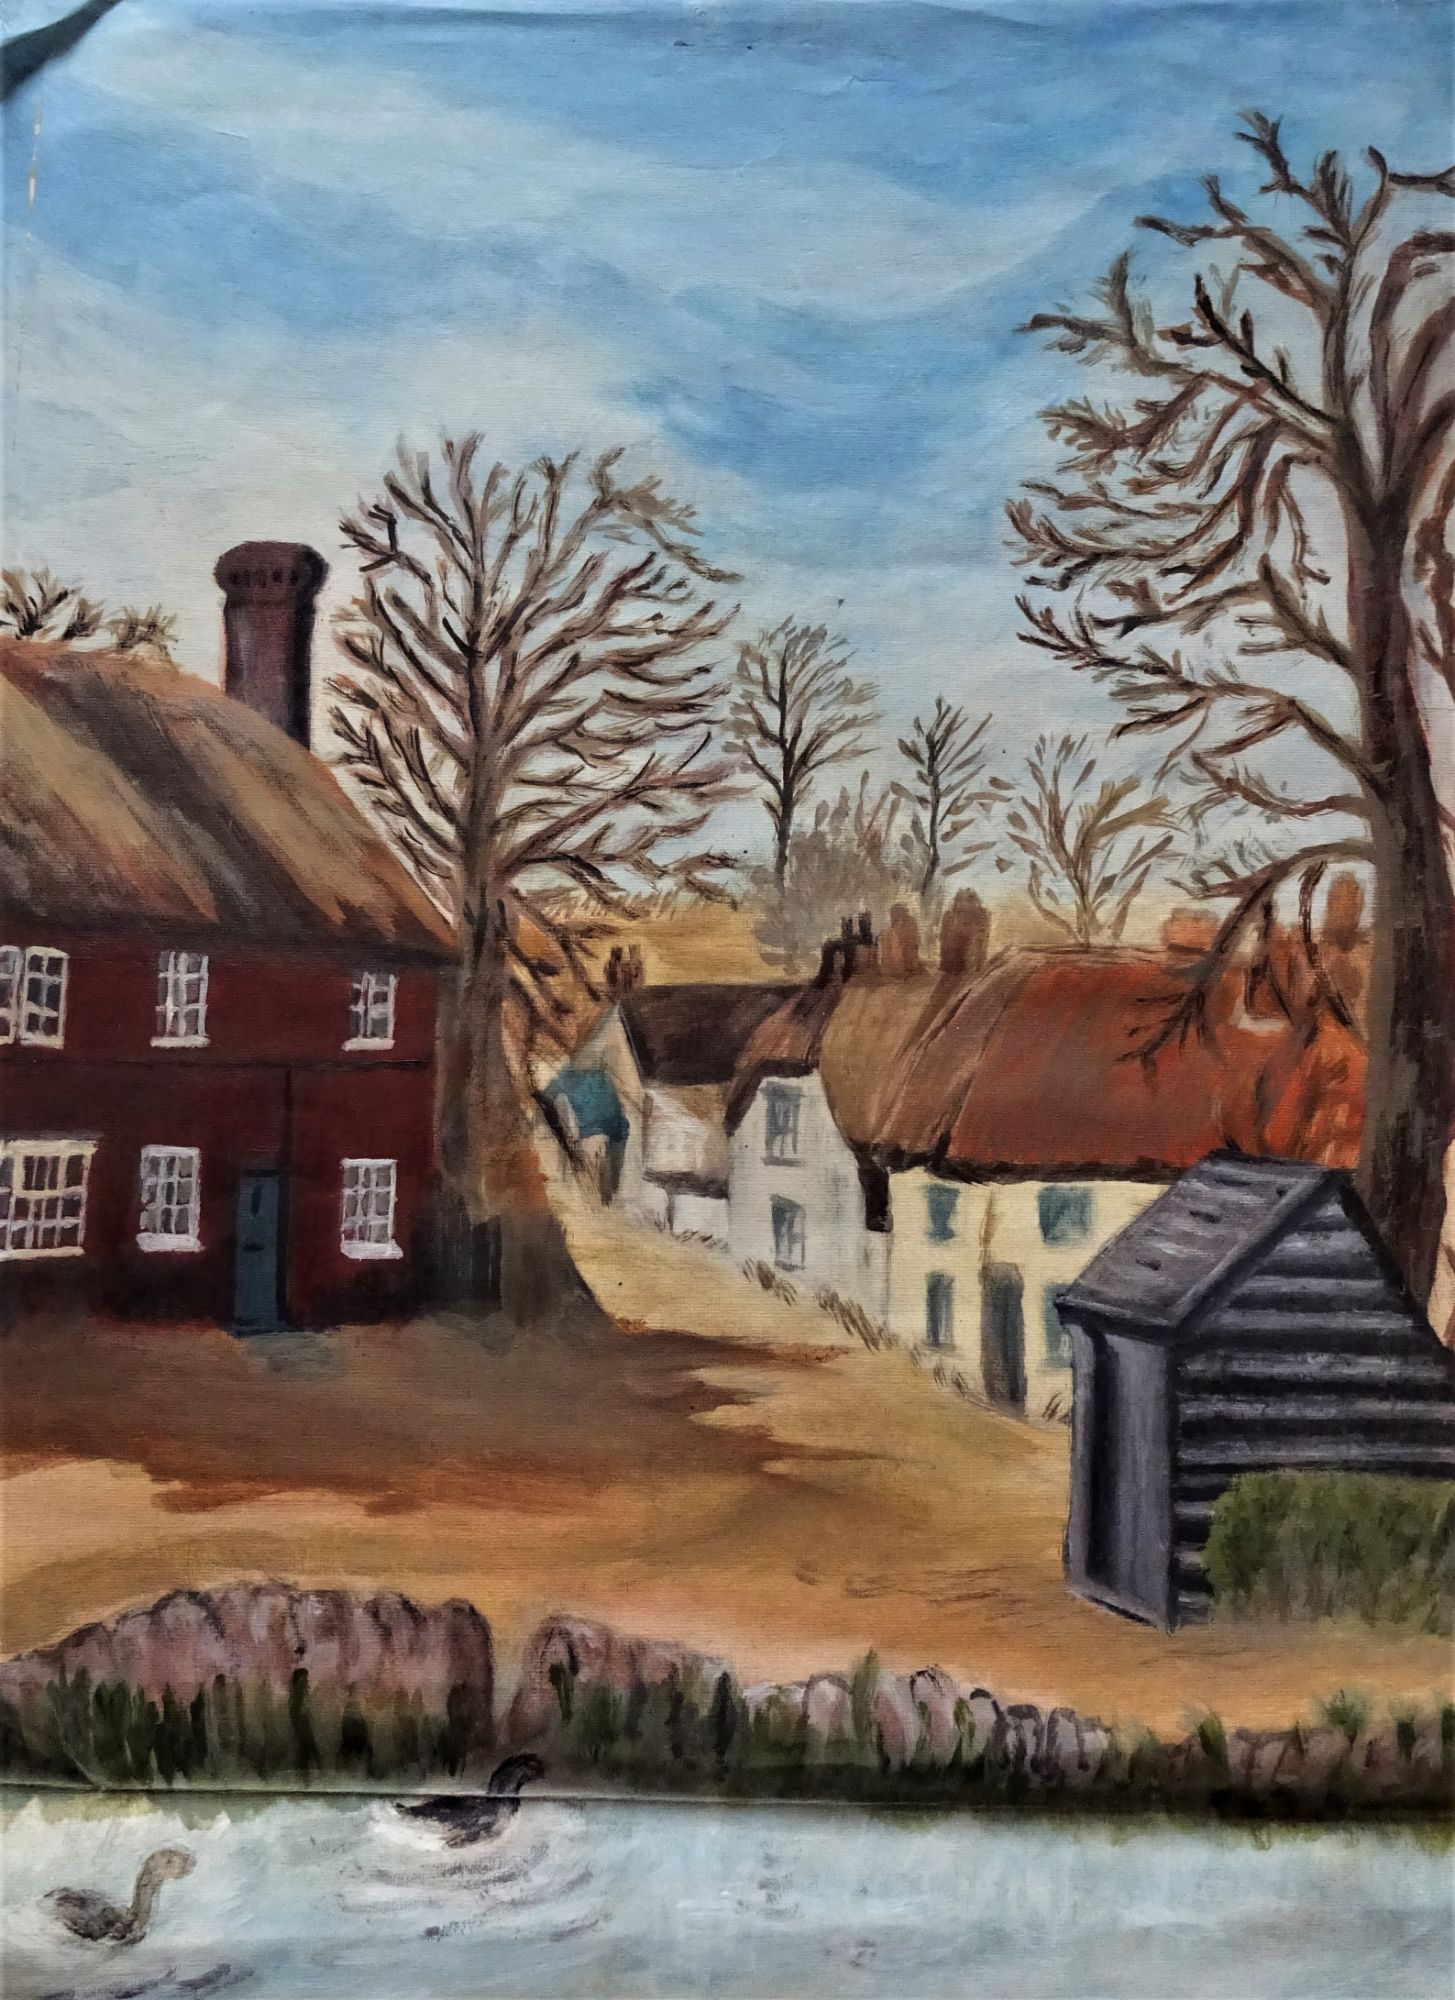 Joan Fuller, c1971, Notts Village scene, oil on paper.